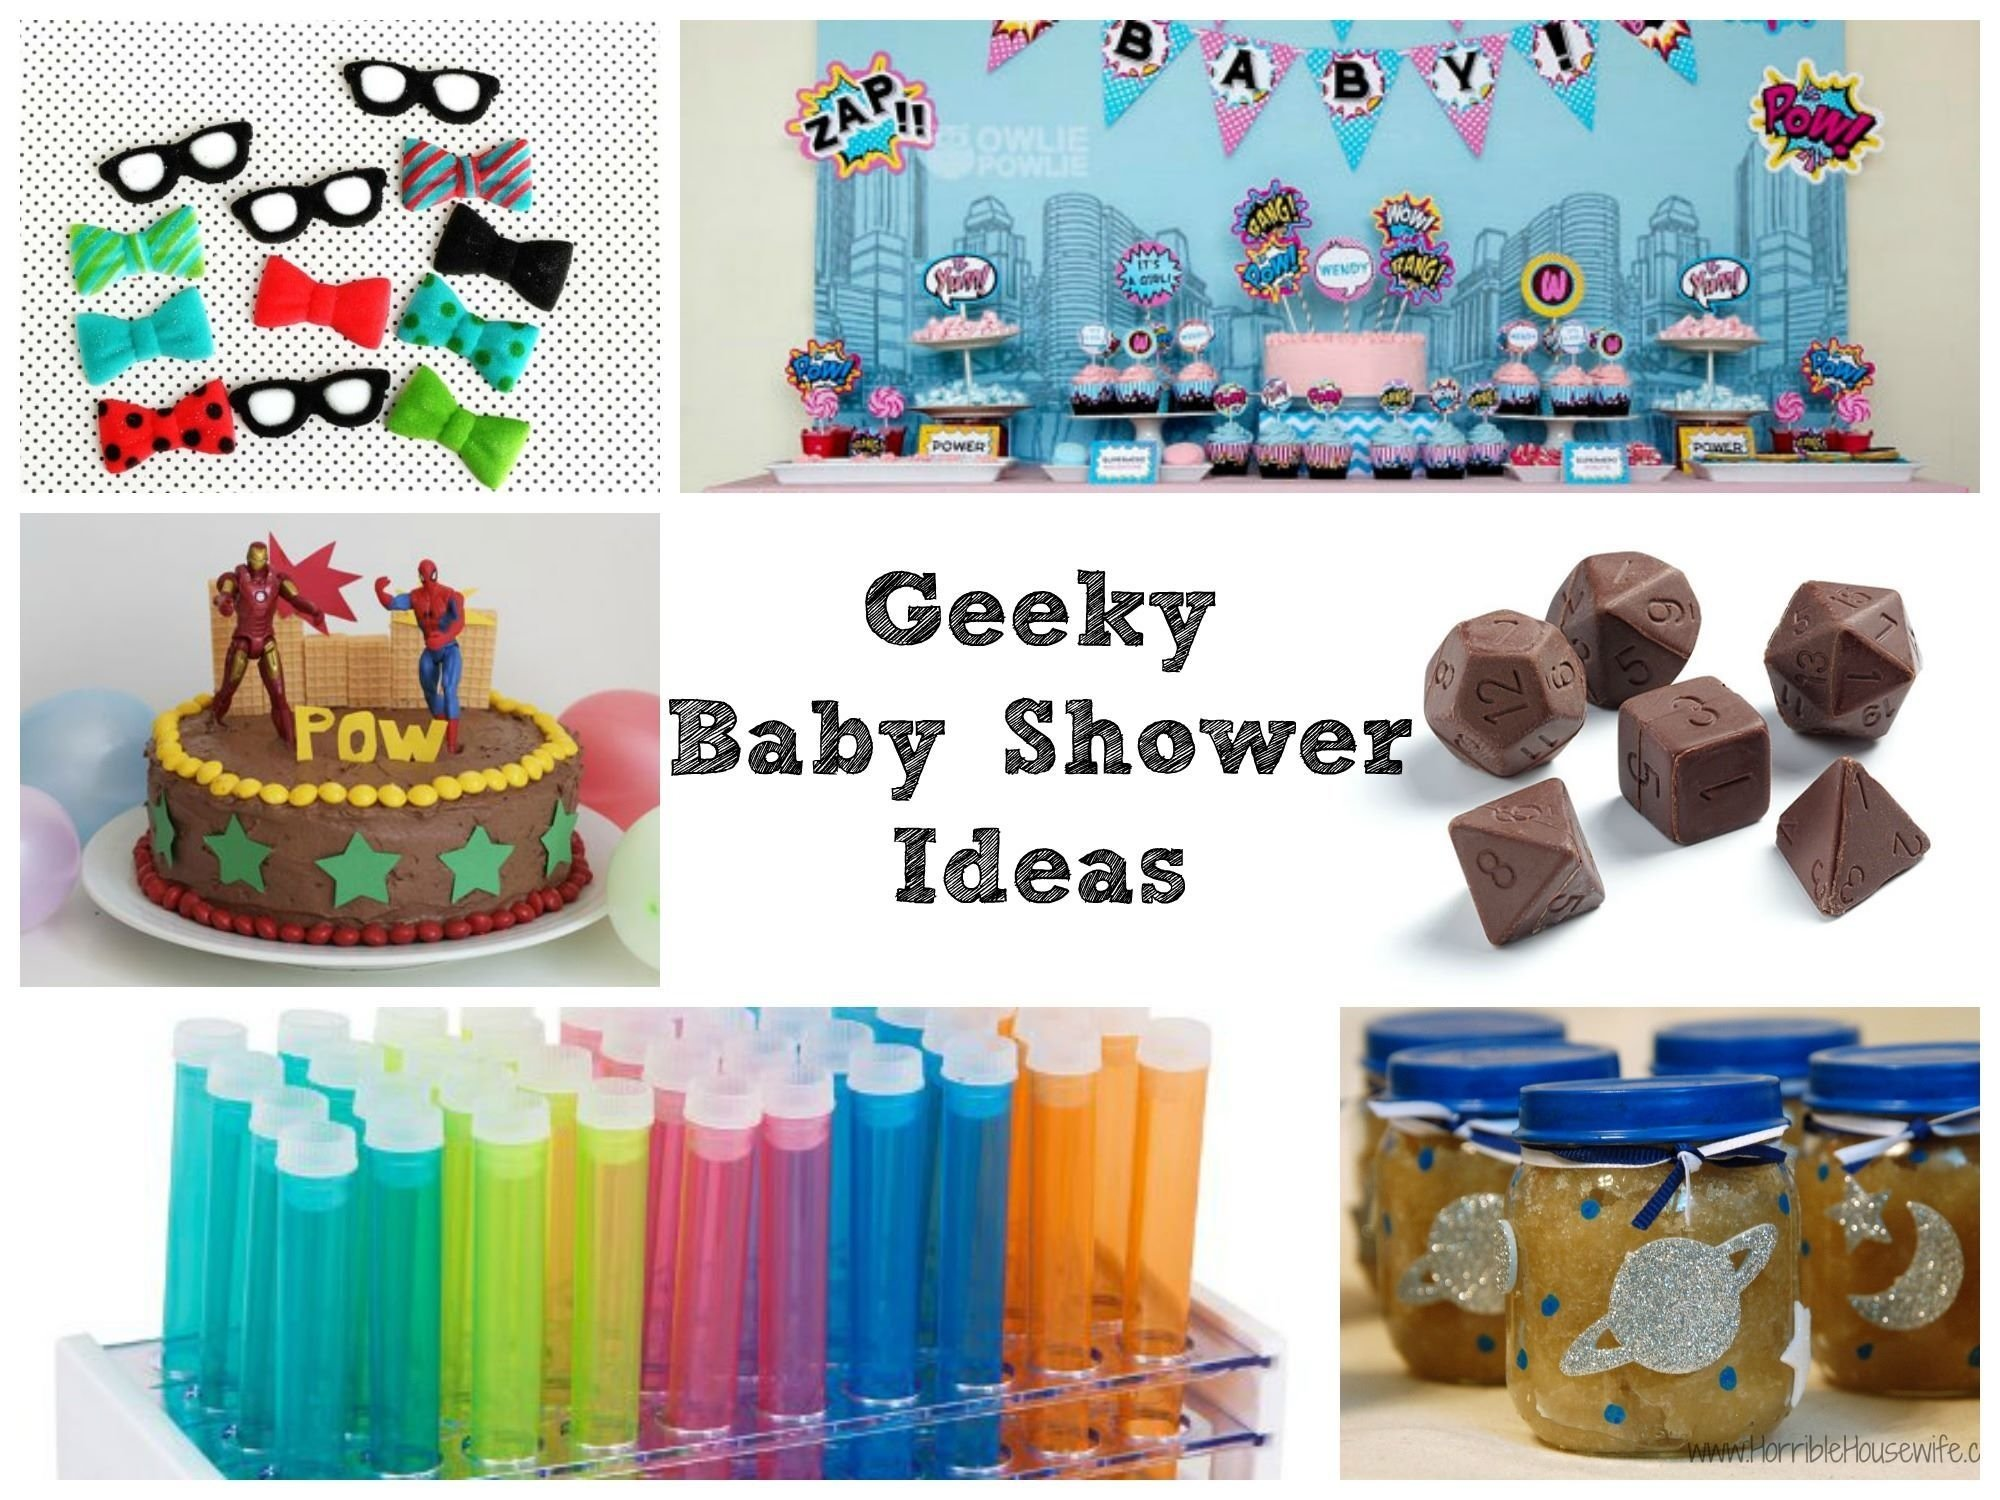 10 Perfect Non Traditional Baby Shower Ideas ideas incredible non traditional baby shower chic showers gold q 1 2021